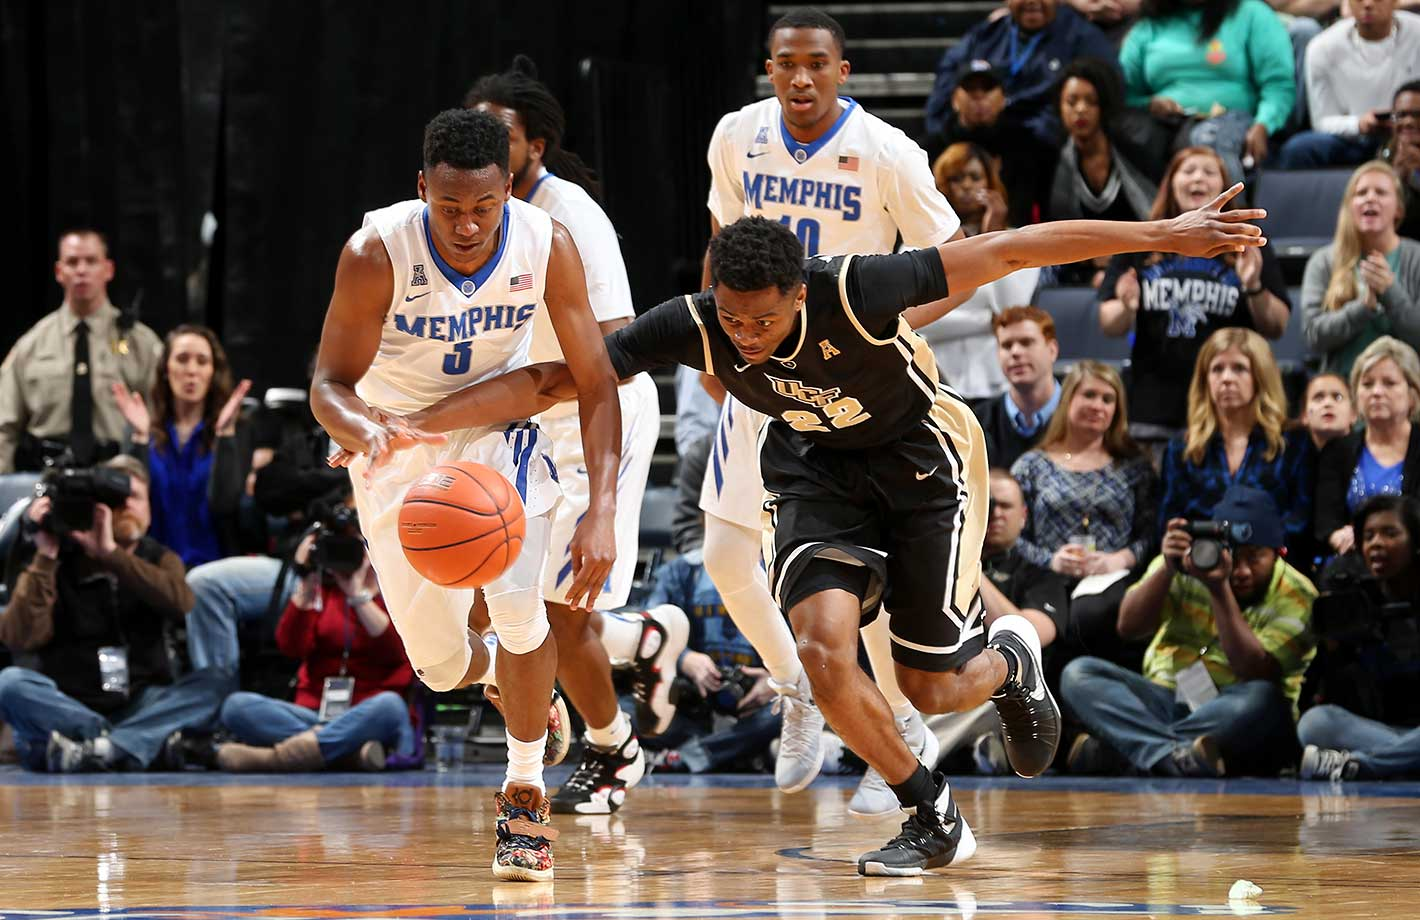 Avery Woodson of the Memphis Tigers scrambles for a loose ball against Chanda McSpadden of Central Florida.